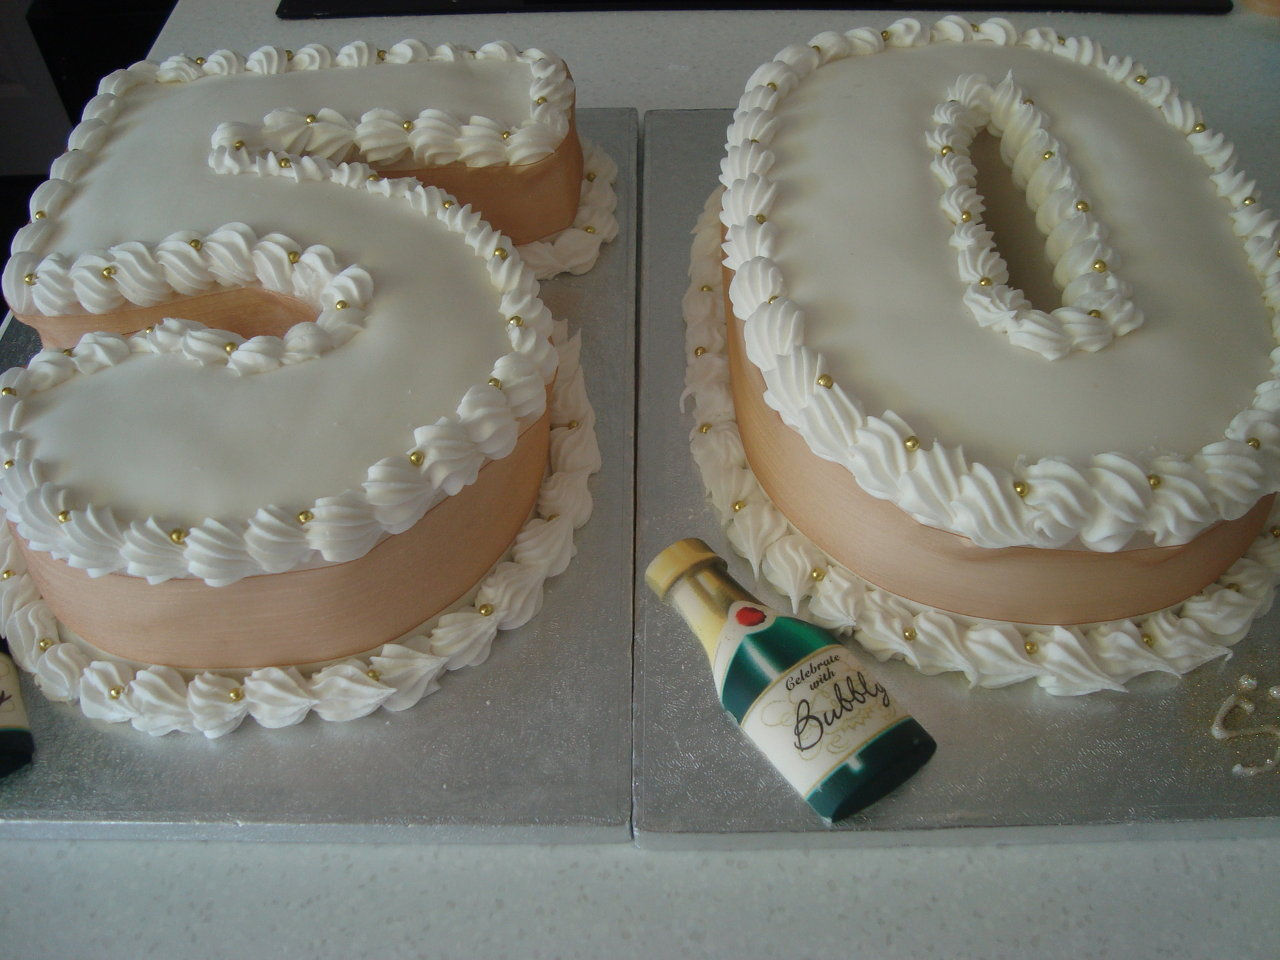 Wix Corinnescakesoxford Created By Cakes0 Based On Sweet Biz